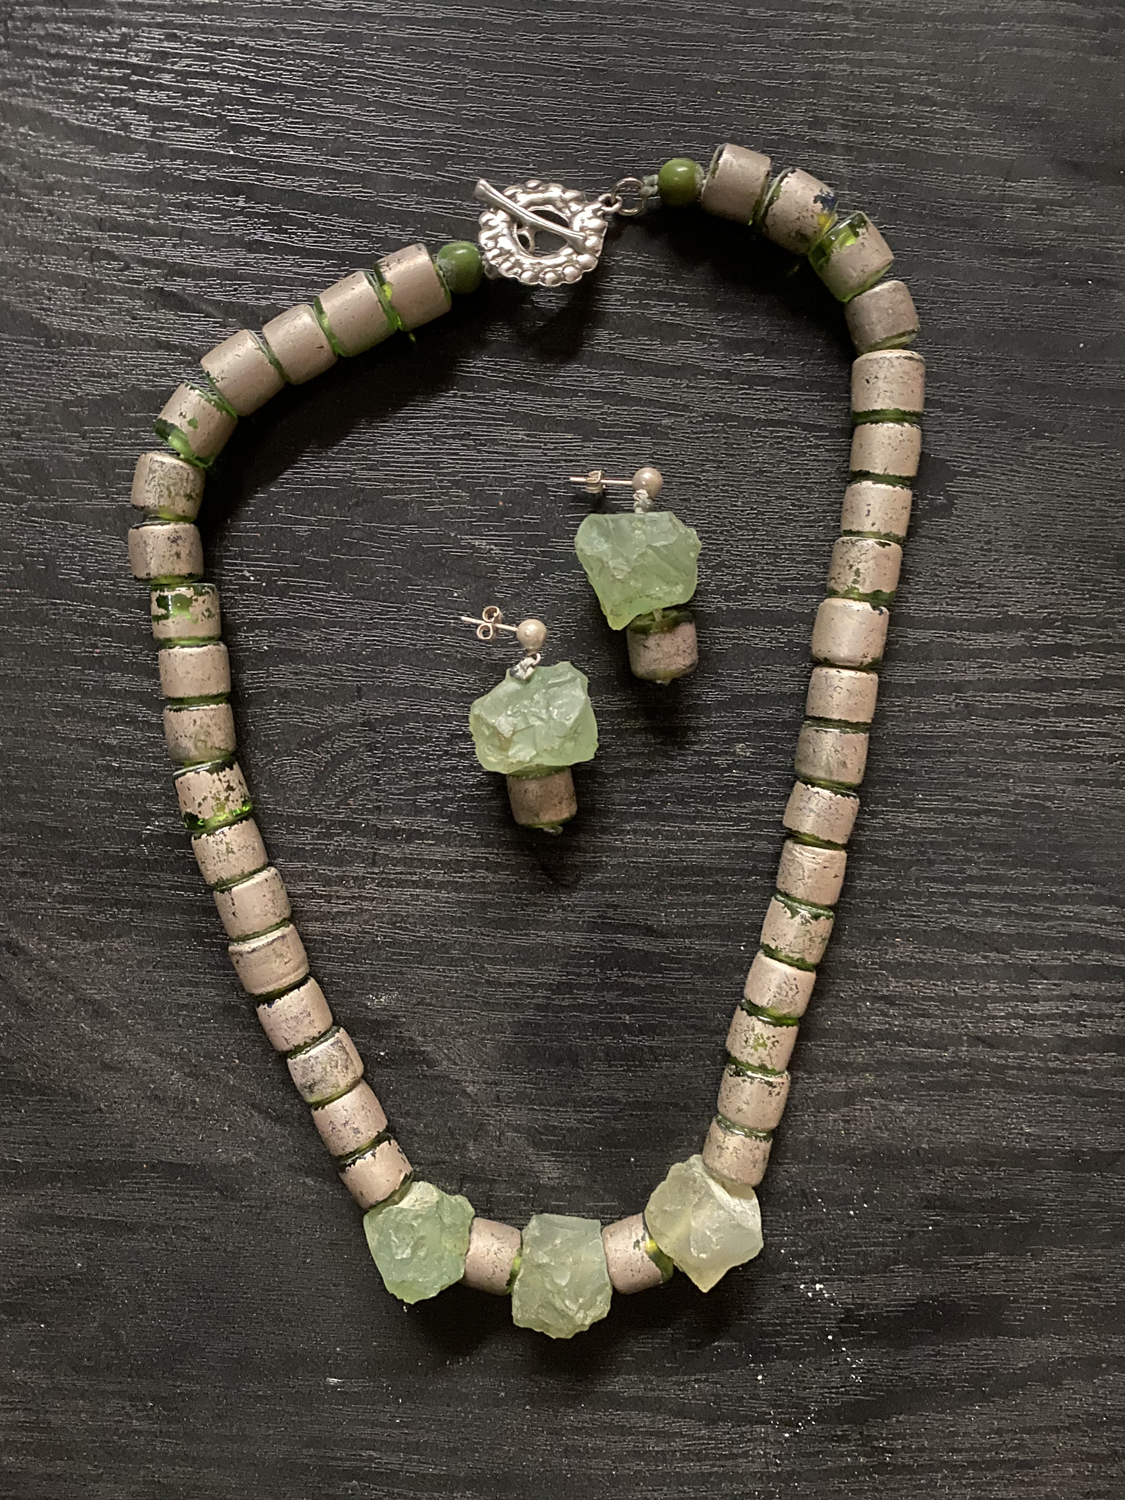 Item 147 - Guttin, Glass necklace and earrings